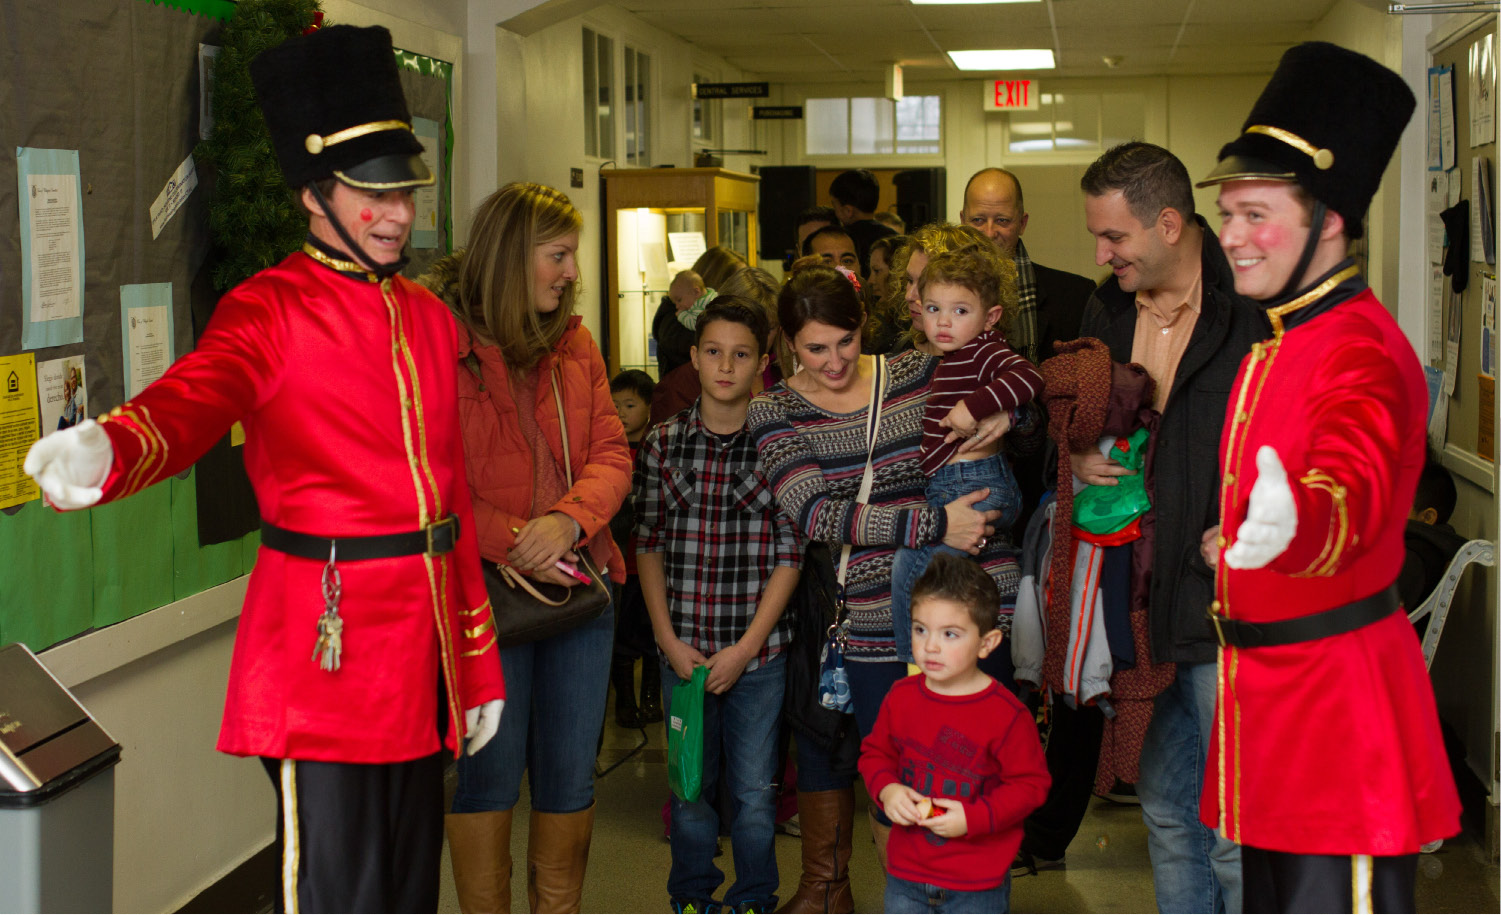 Mayor William W. Dickinson Jr., left, and Sam Carmody, dressed as toy soldiers, lets a family pass through to take photos with Santa Claus during the annual Seasons of Celebration in Wallingford, Dec. 6, 2014. | Eric Vo / Record-Journal